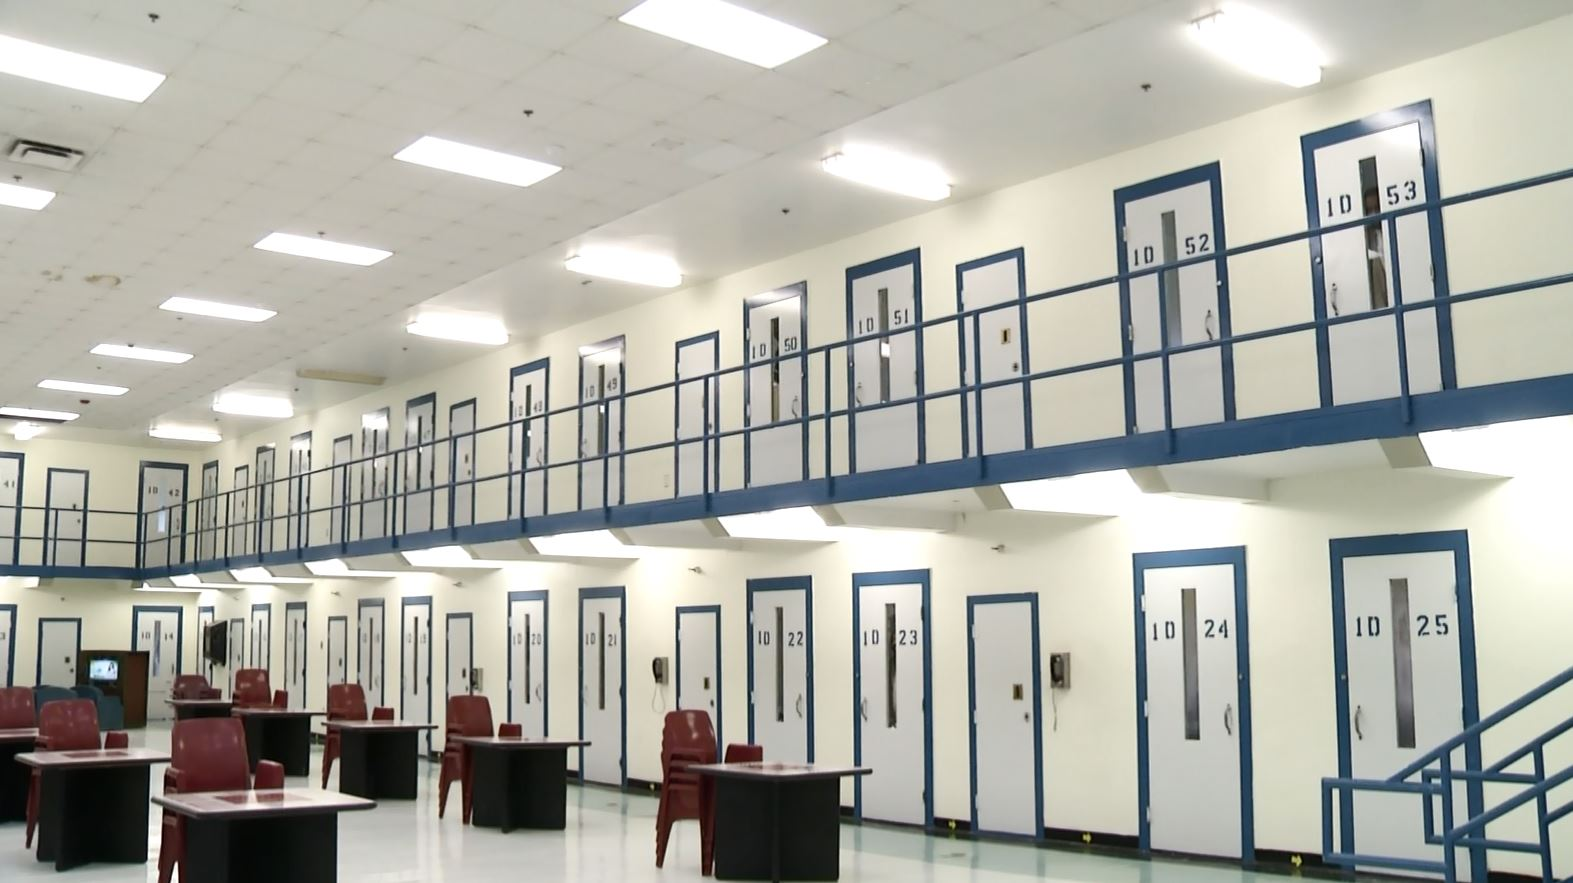 chatham co jail_1526495627182.JPG.jpg